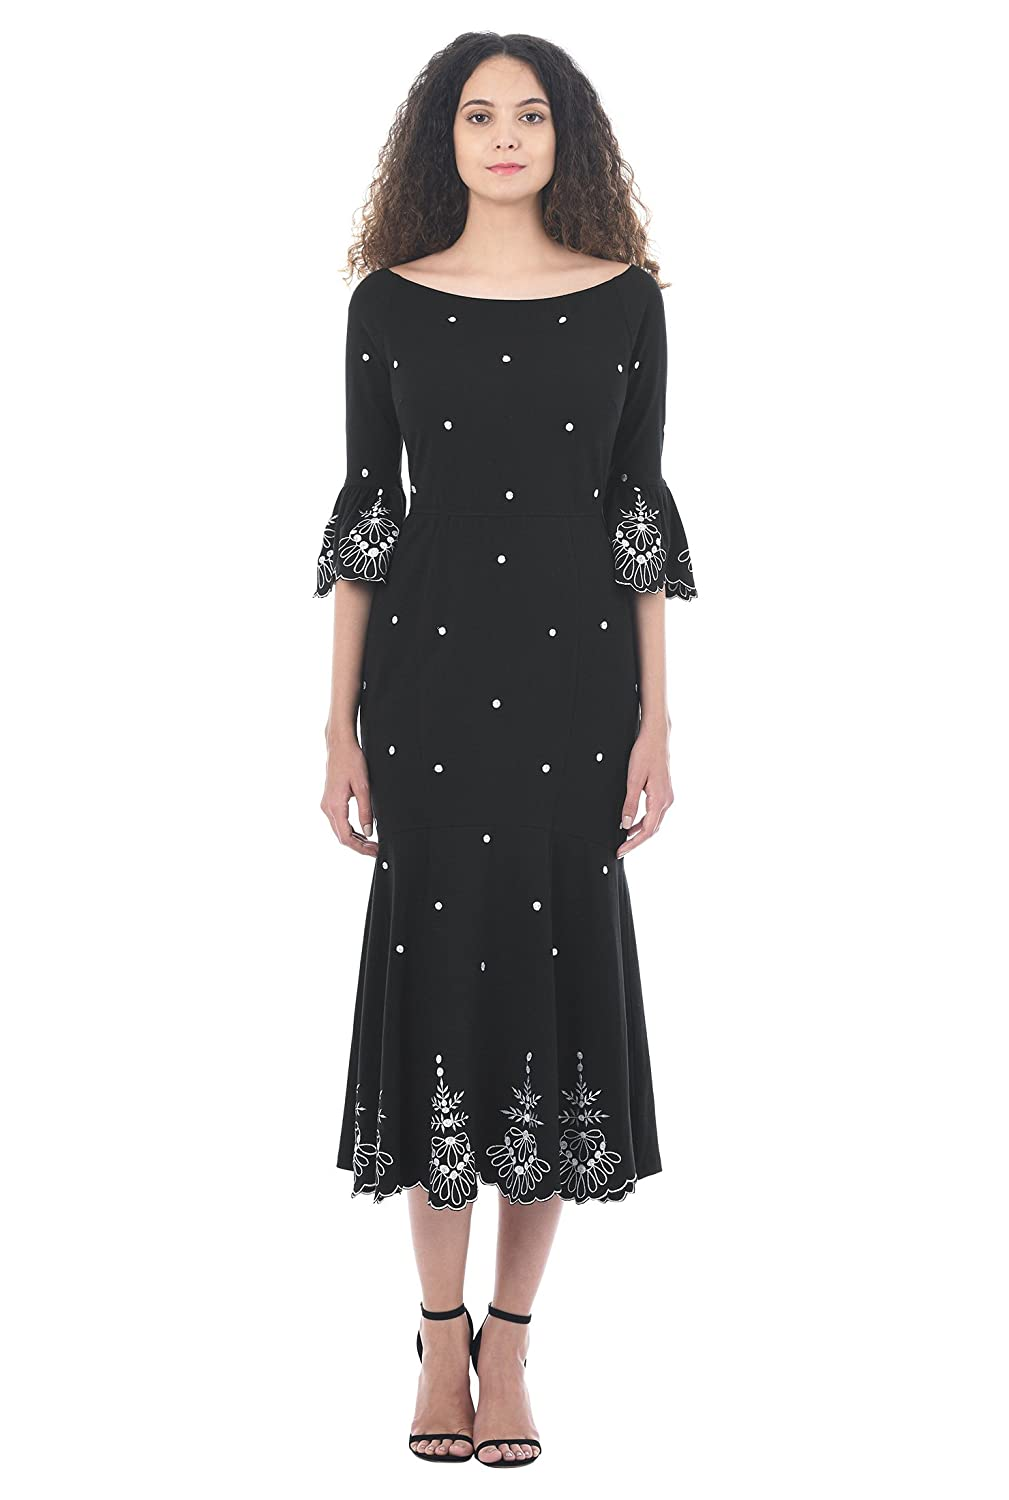 1930s Style Fashion Dresses eShakti Womens Floral Embellished Cotton Knit Dress $59.95 AT vintagedancer.com